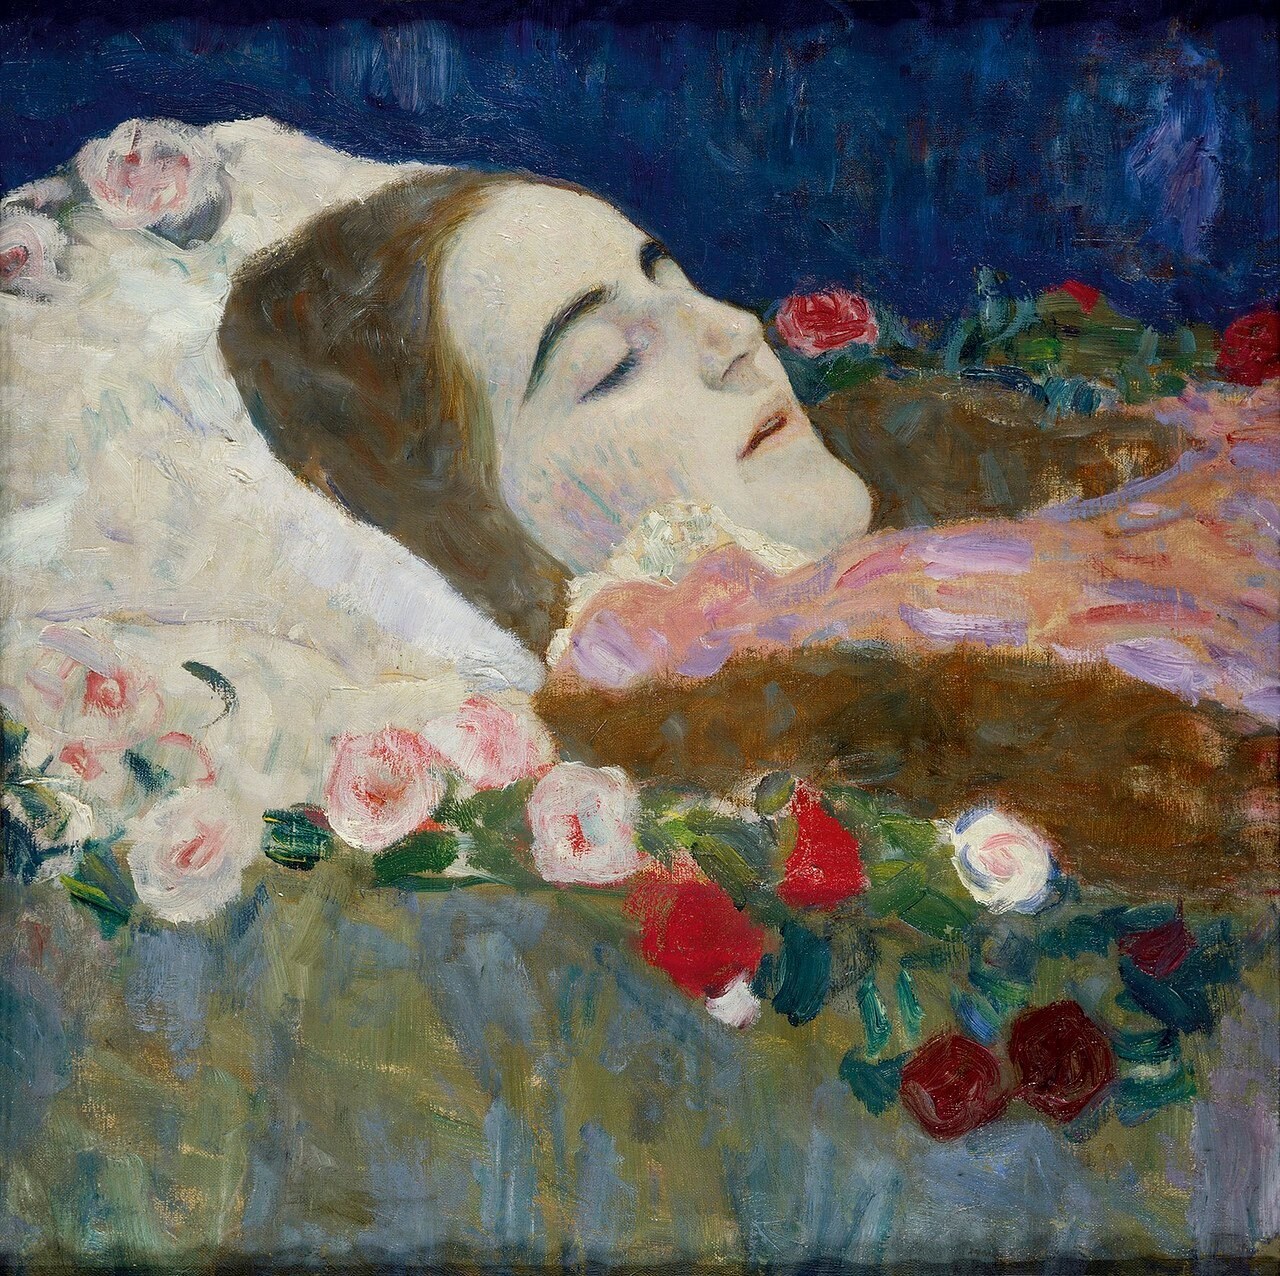 Ria Munk on her Deathbed, 1912